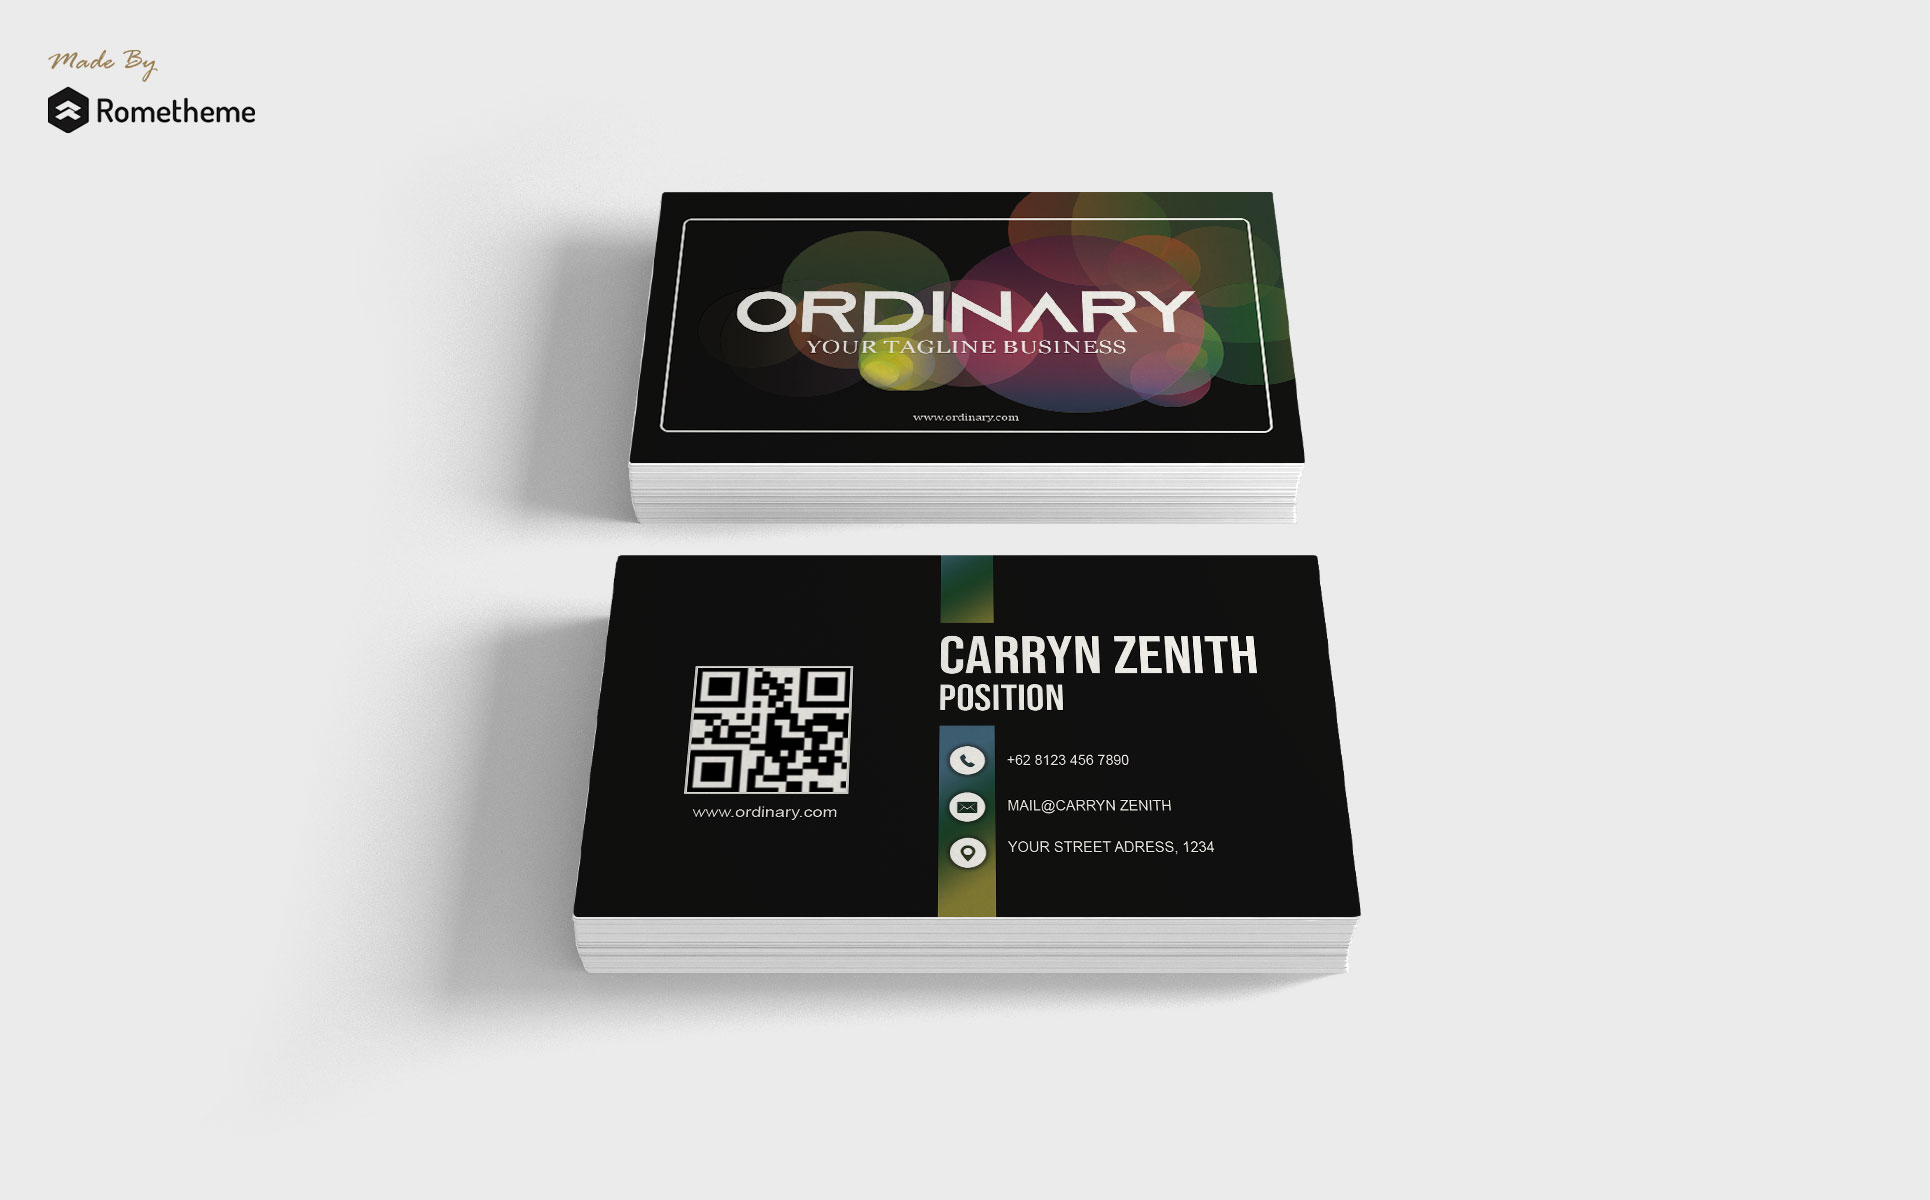 Overlapping Transparent Gradient Circles Business Card Design Template